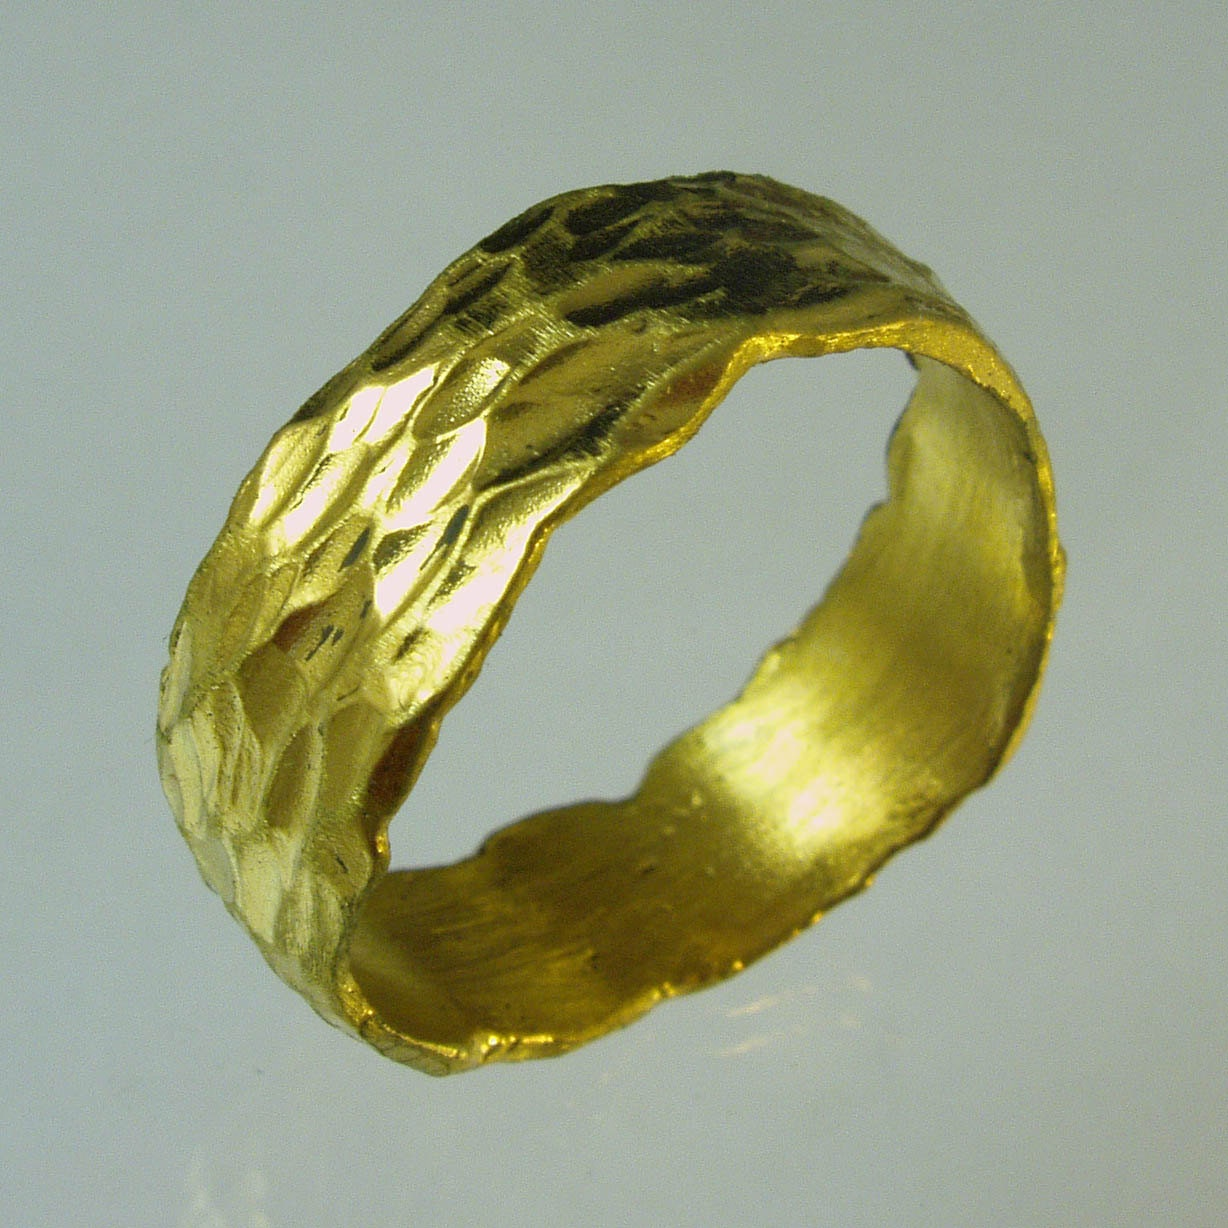 pure gold 24 karat solid gold ring100 pure recycled gold. Black Bedroom Furniture Sets. Home Design Ideas